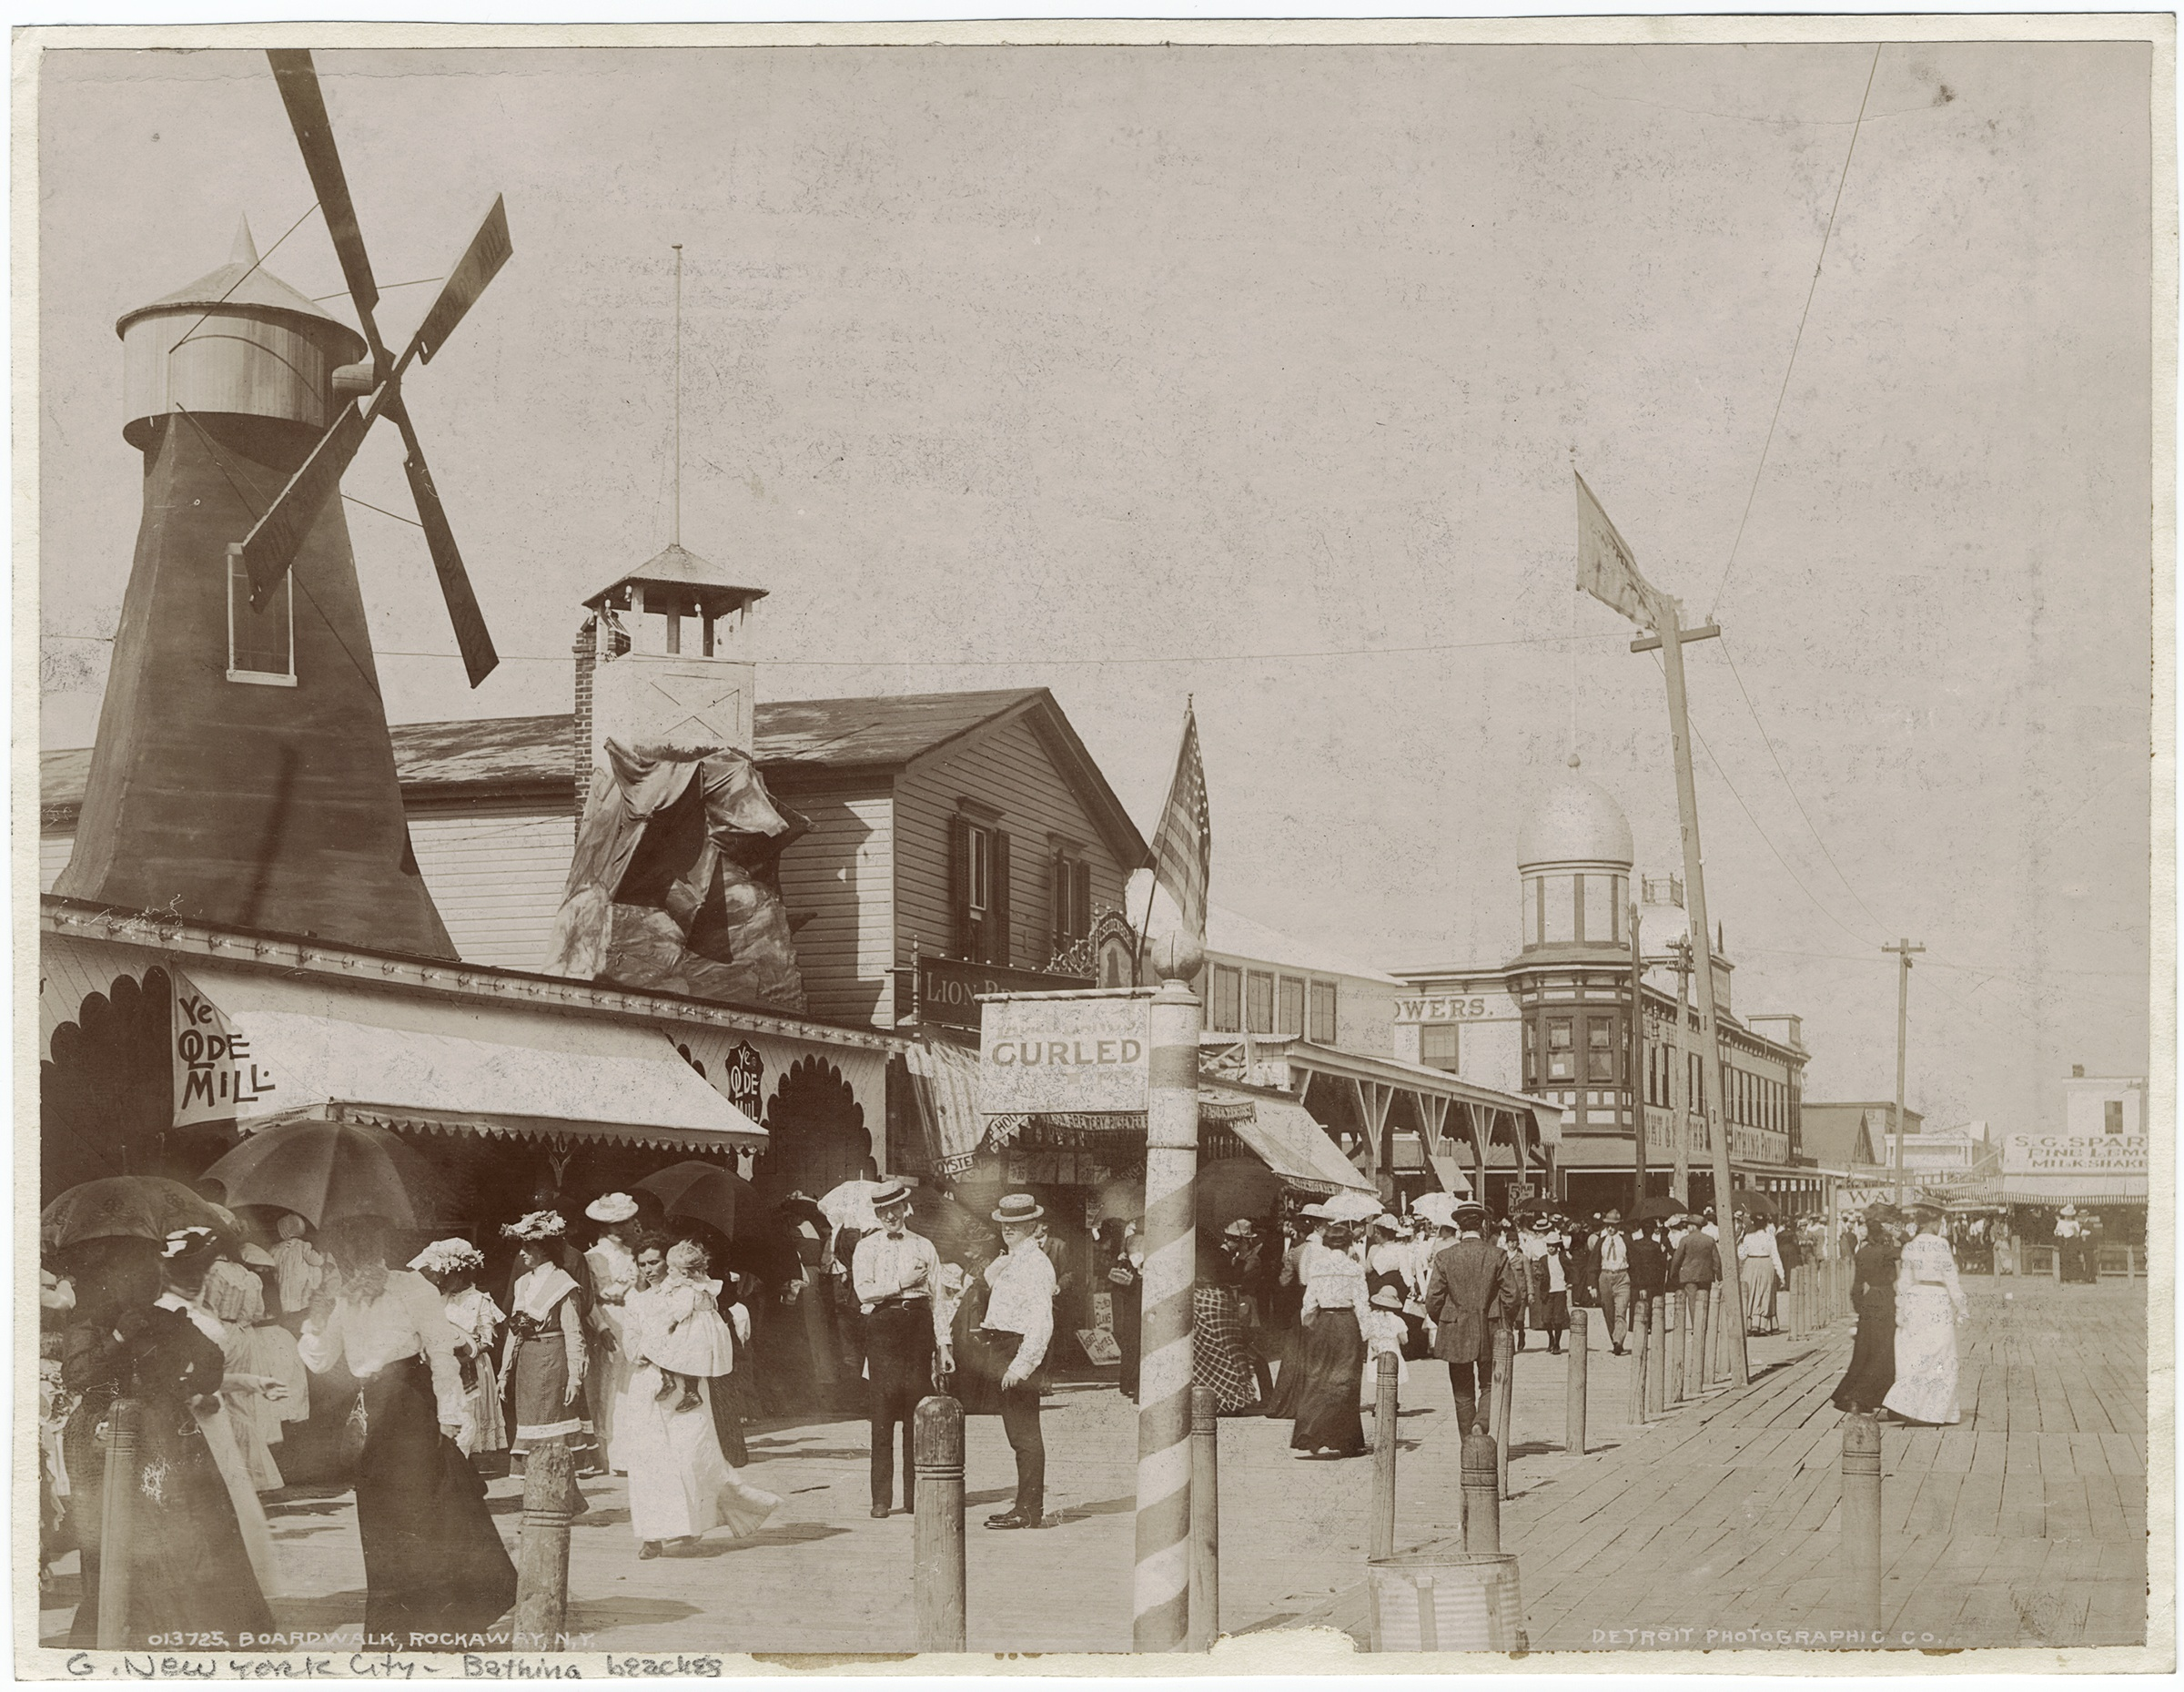 The Rockaways, photograph courtesy of the New York Public Library